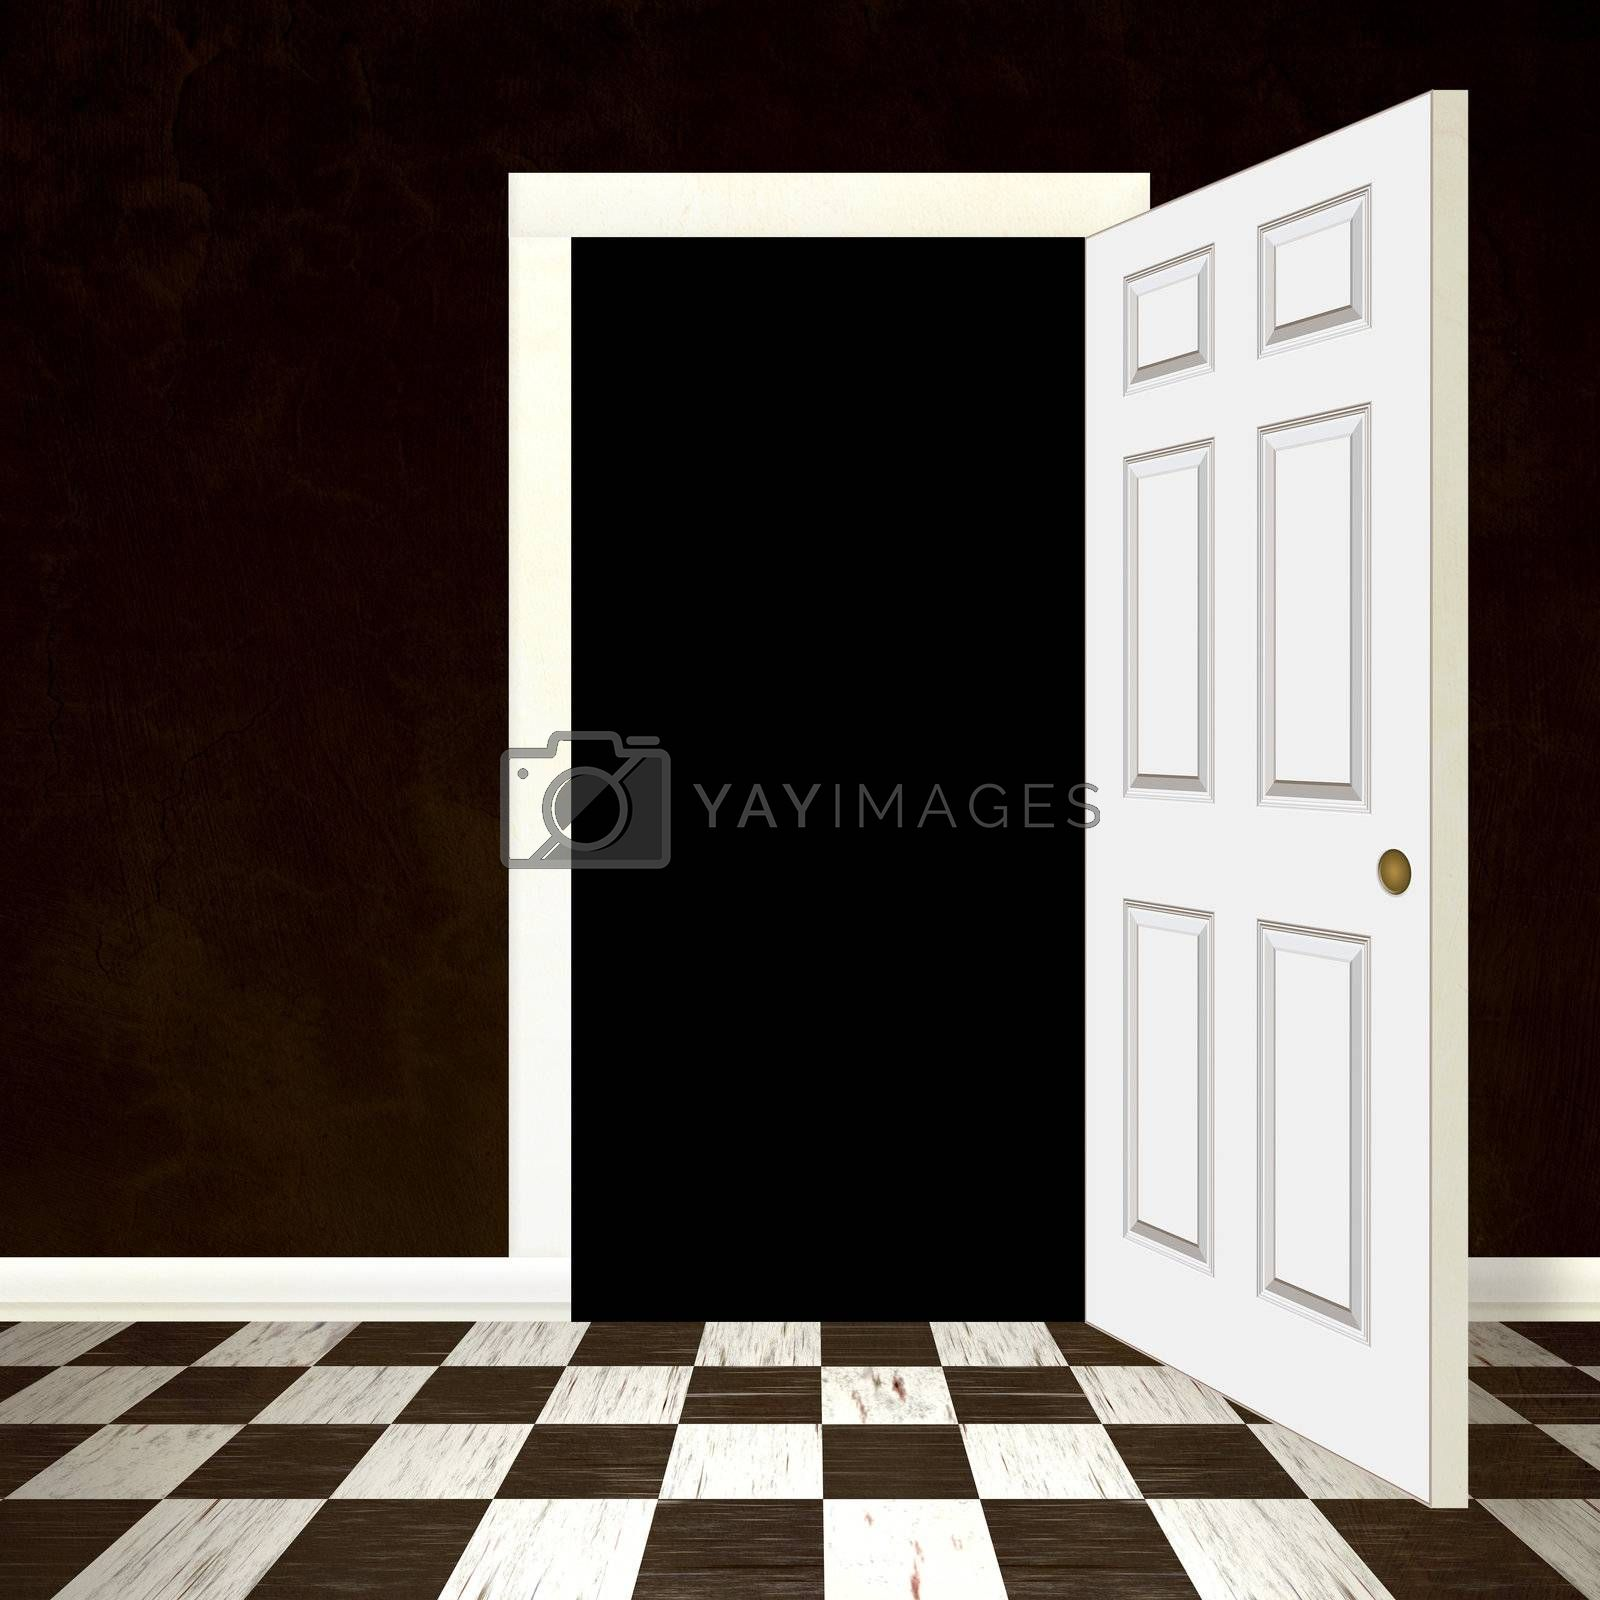 An entrance with an opened doorway and copyspace in the black area to insert your own graphic or photo.